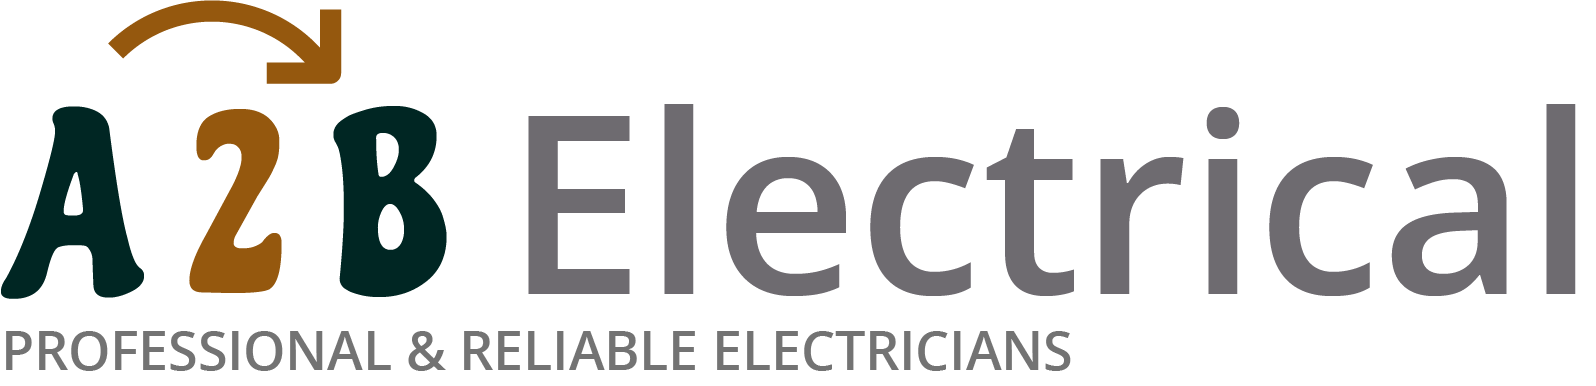 If you have electrical wiring problems in Cardiff, we can provide an electrician to have a look for you.